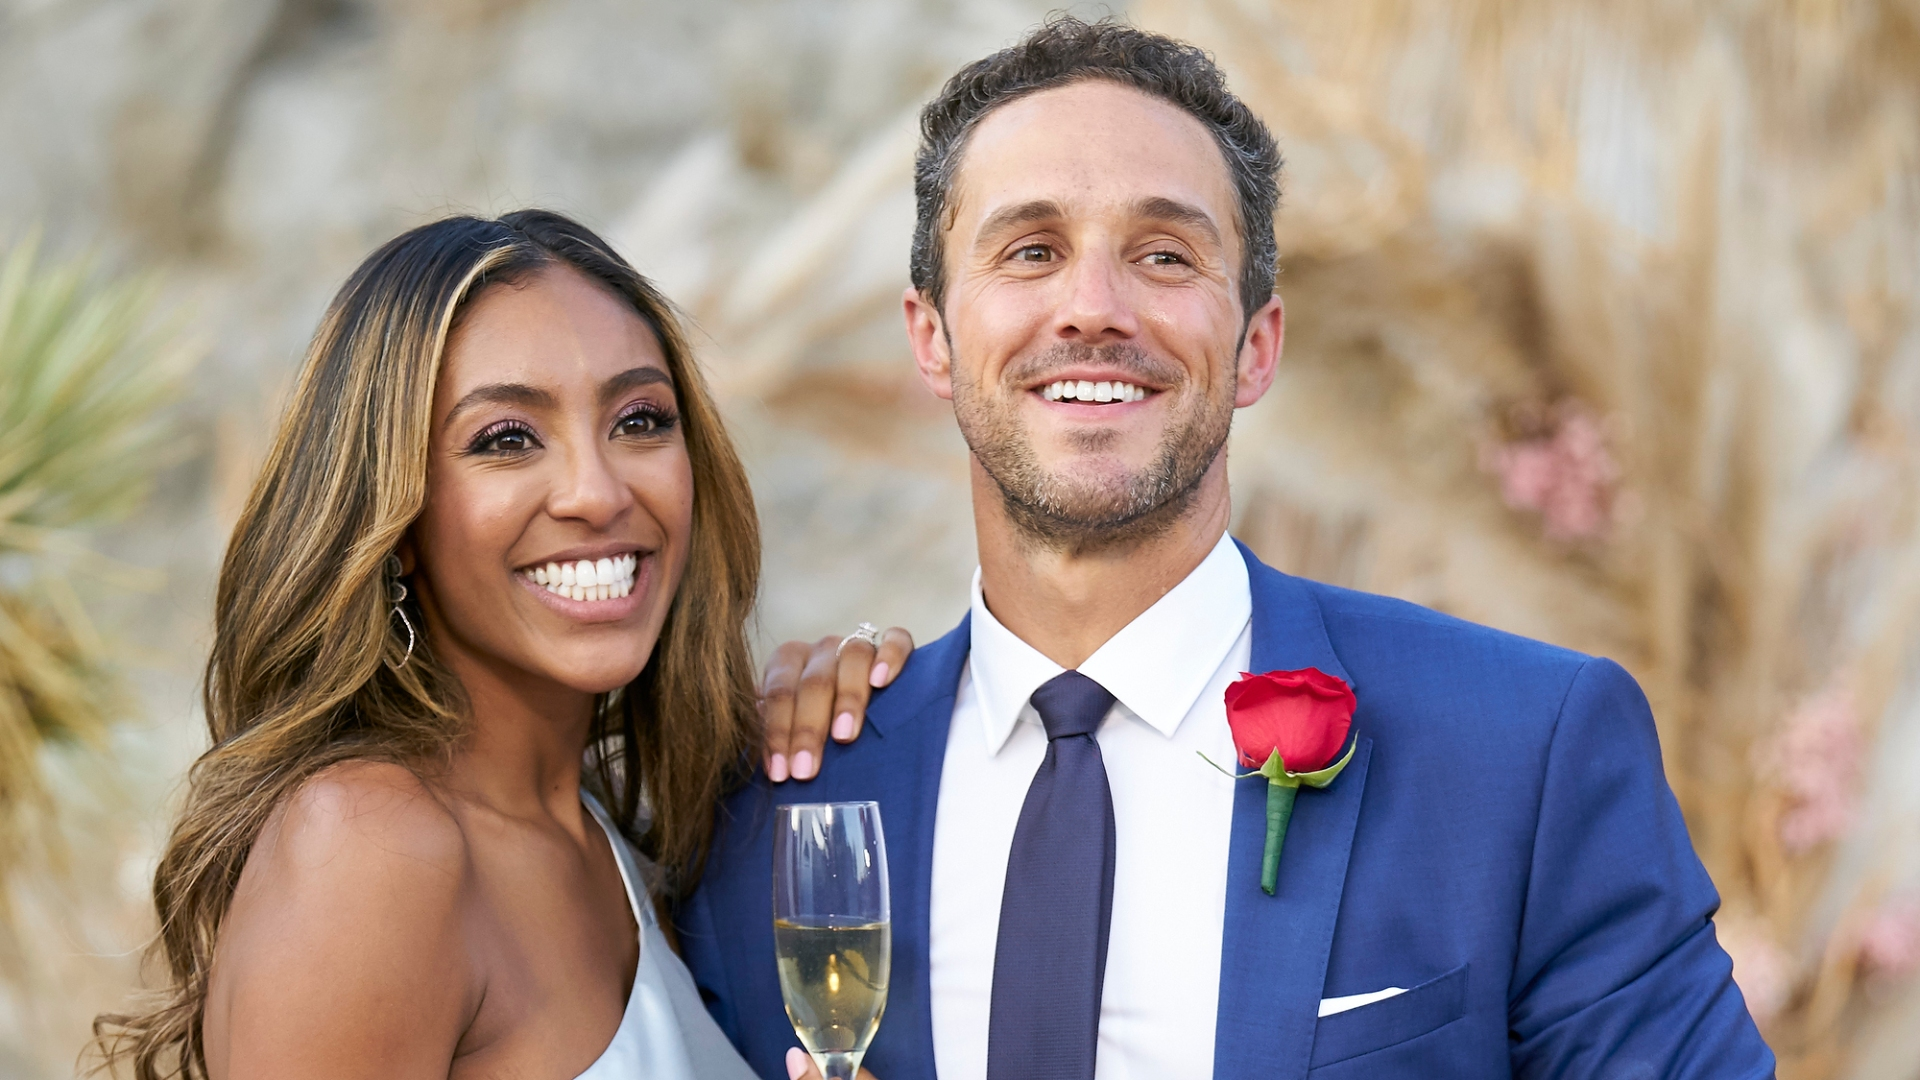 Going to the Chapel? Bachelorette Tayshia Adams Reveals When She and Fiance Zac Clark Will Get Married